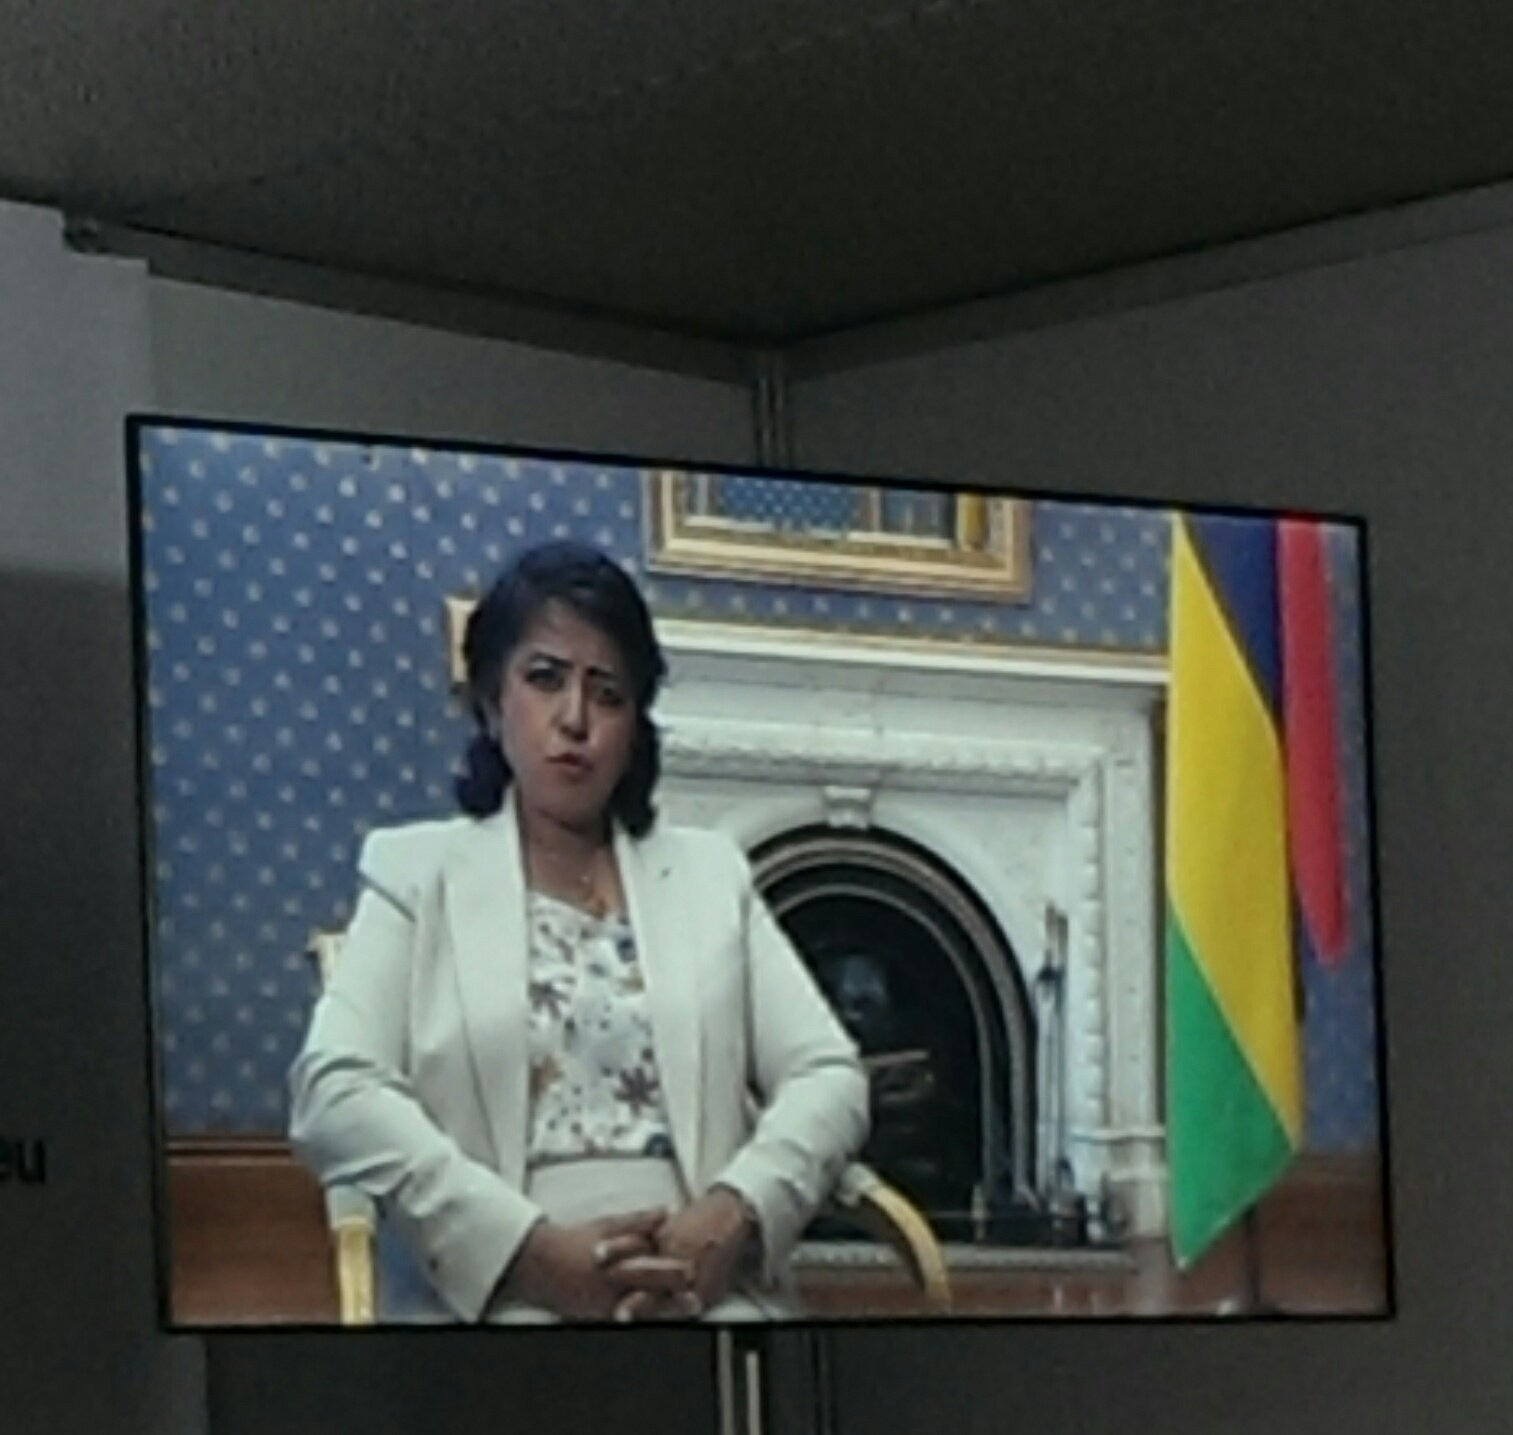 Fantastic address by President #Mauritius @aguribfakim - very inspiring to hear how trade supports development & sustainable growth #EDD17 👏 https://t.co/Kmr46o8YJ7